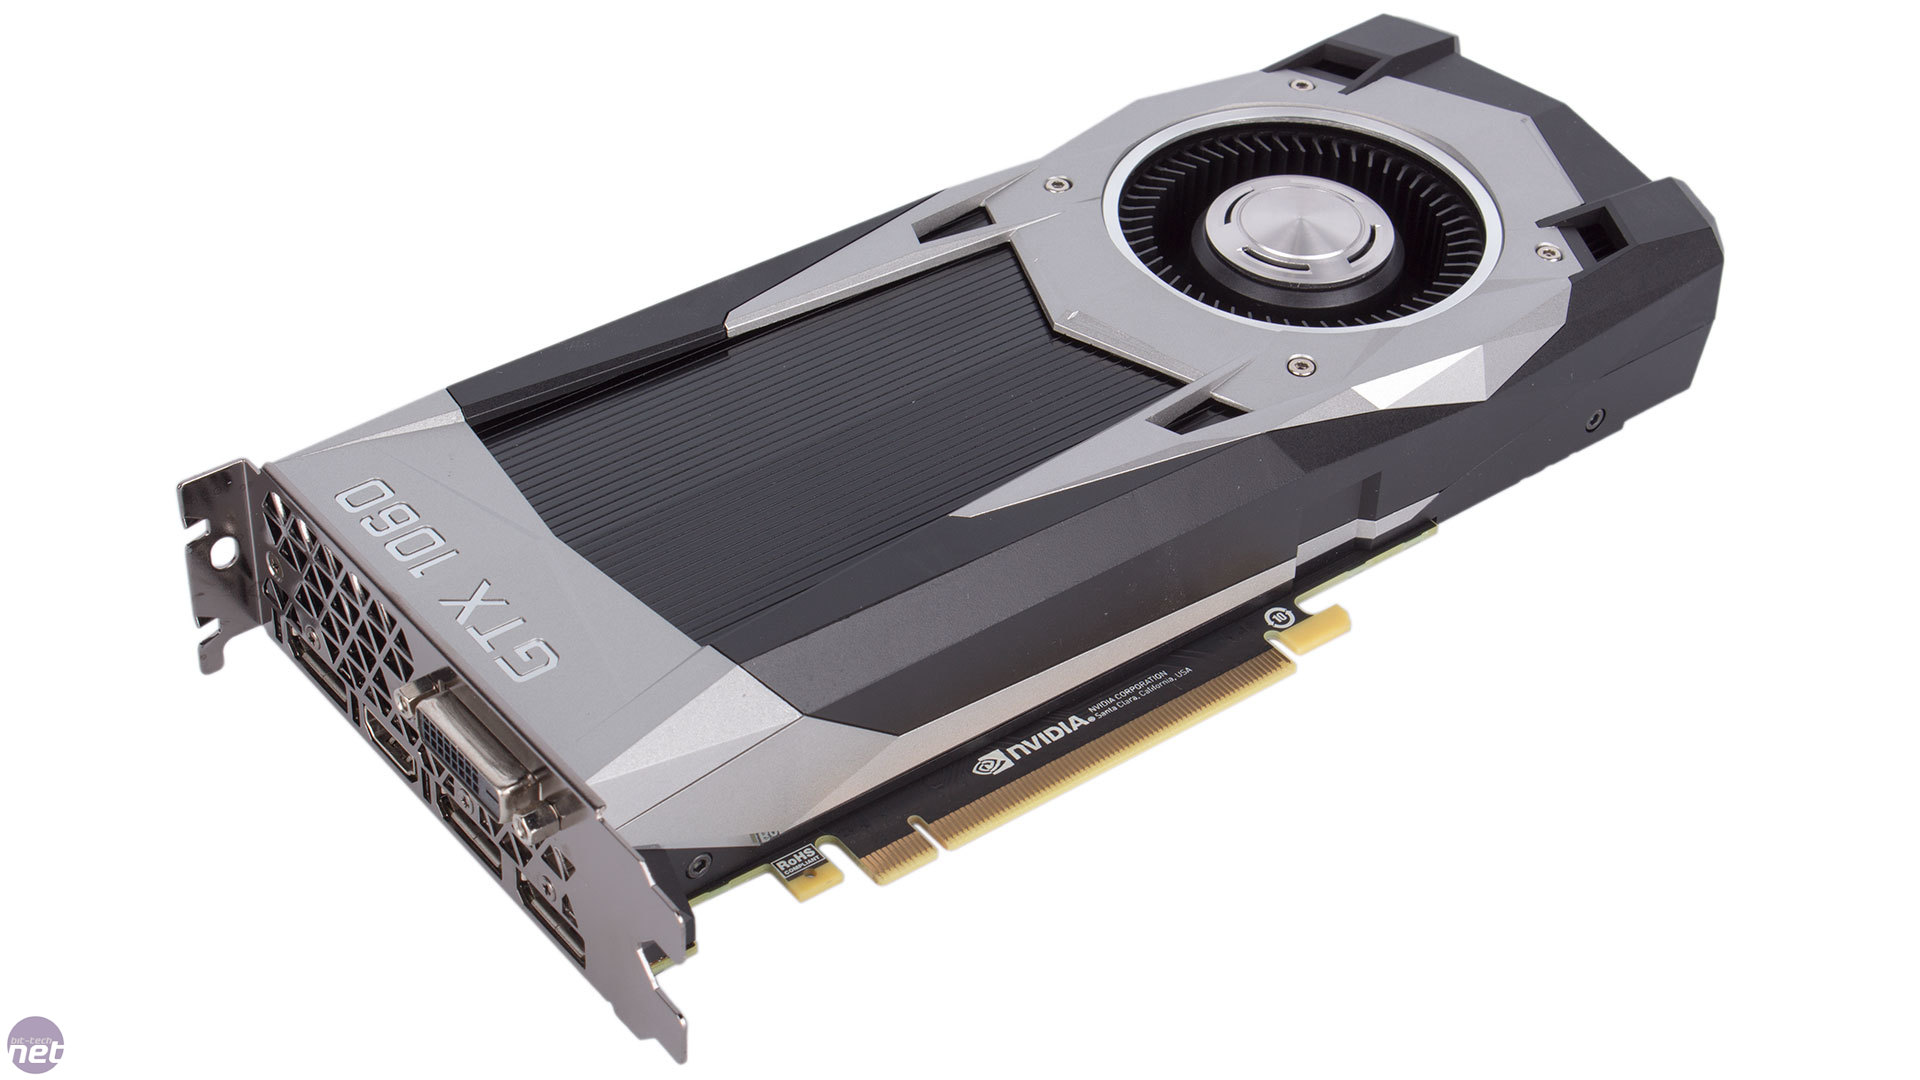 NVIDIA GeForce GTX 1060 3GB Graphics Card and 500W Power Supply